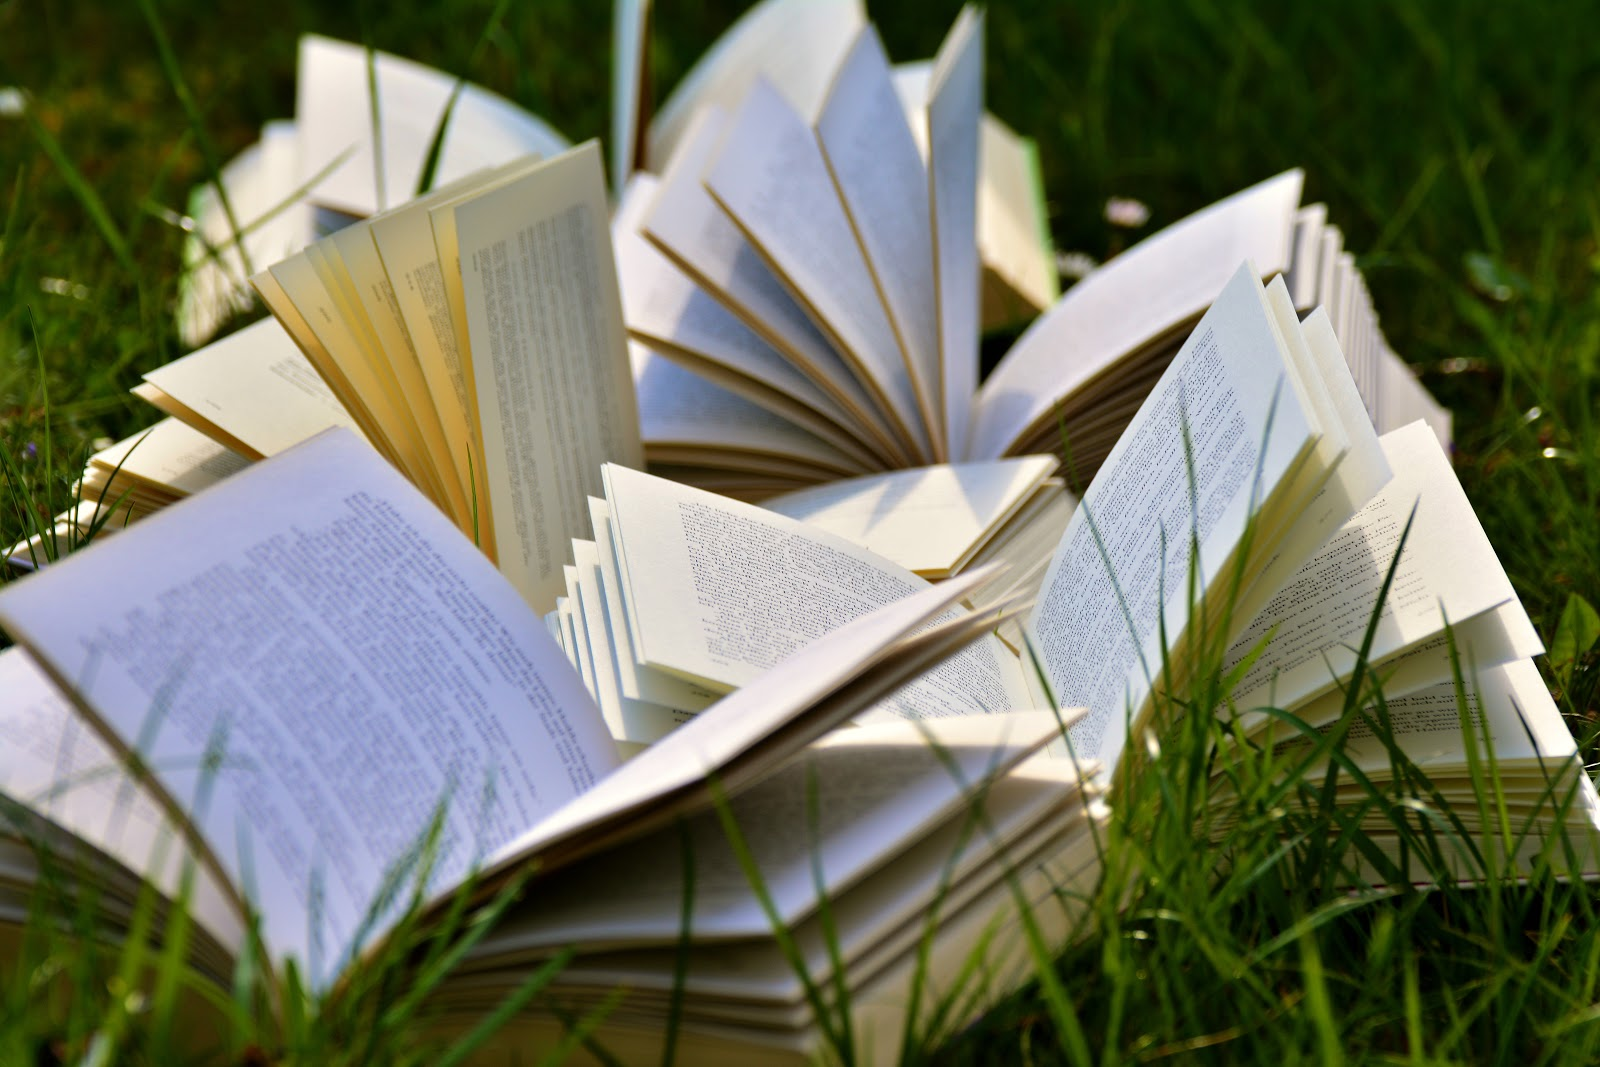 a pile of open books in the grass